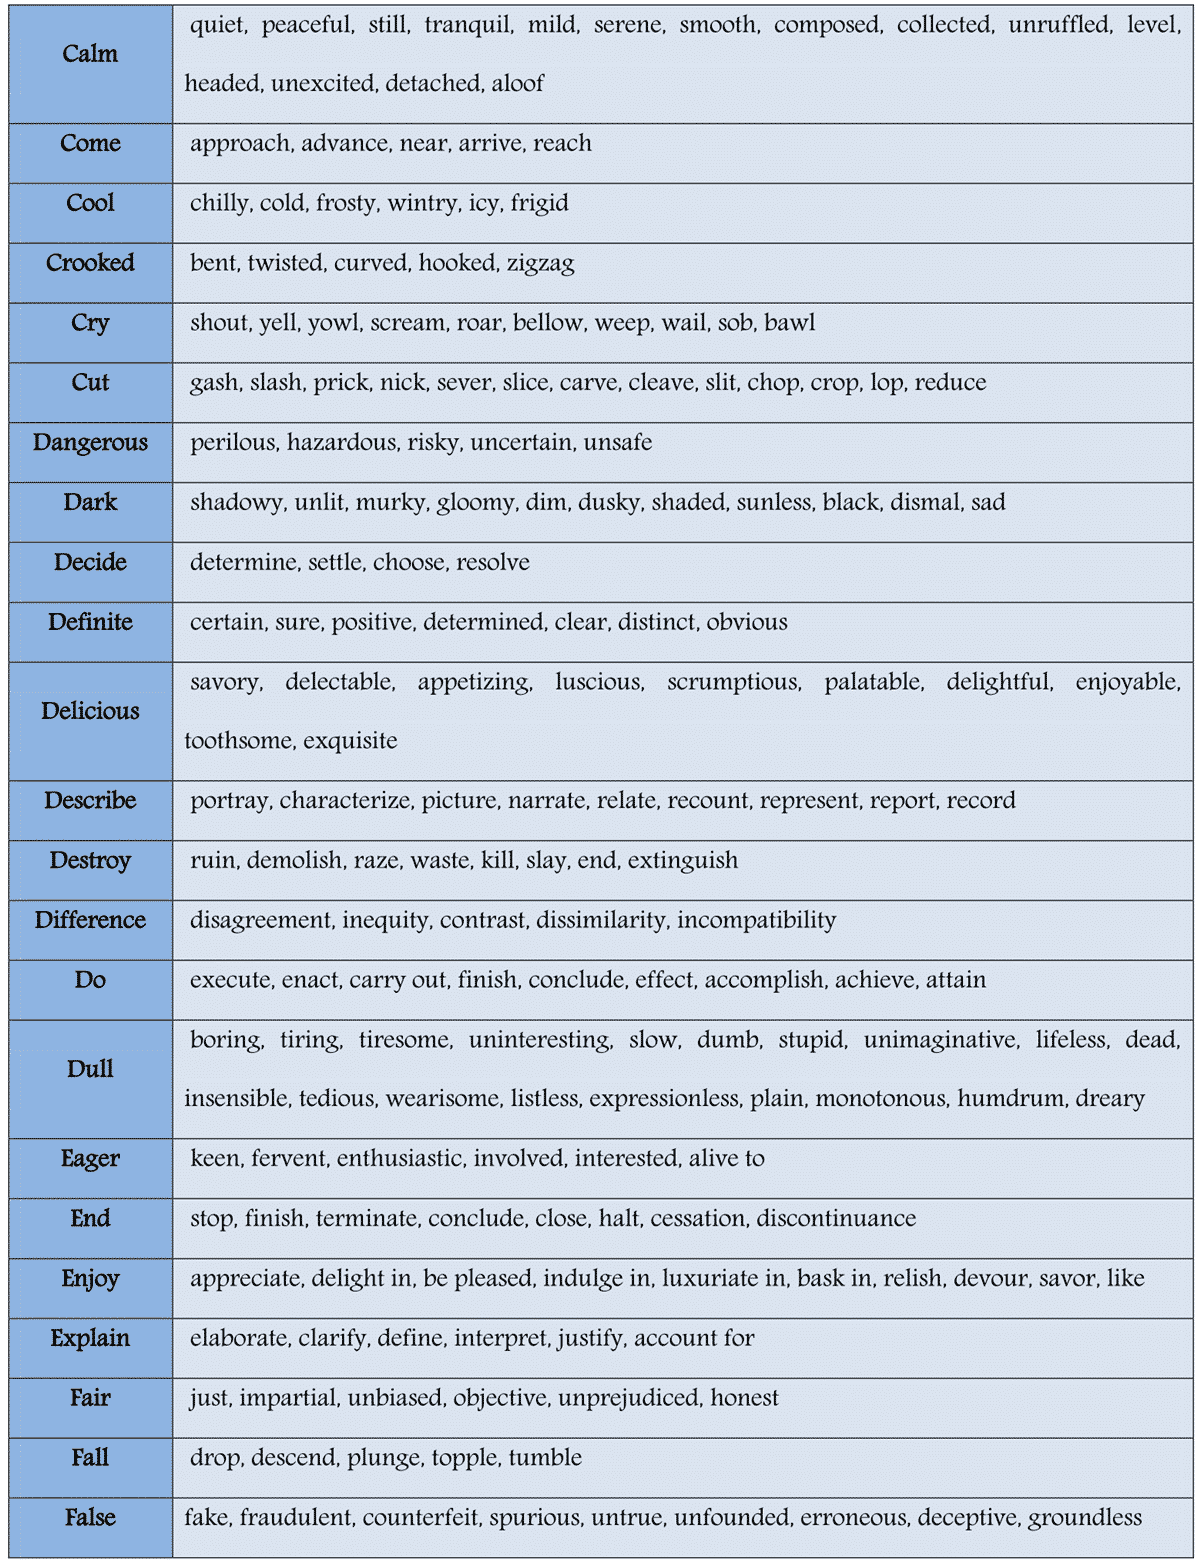 List of 100 common synonyms for improving your english fluent land here you will find a table of commonly used words and their synonyms to improve your english vocabulary malvernweather Image collections